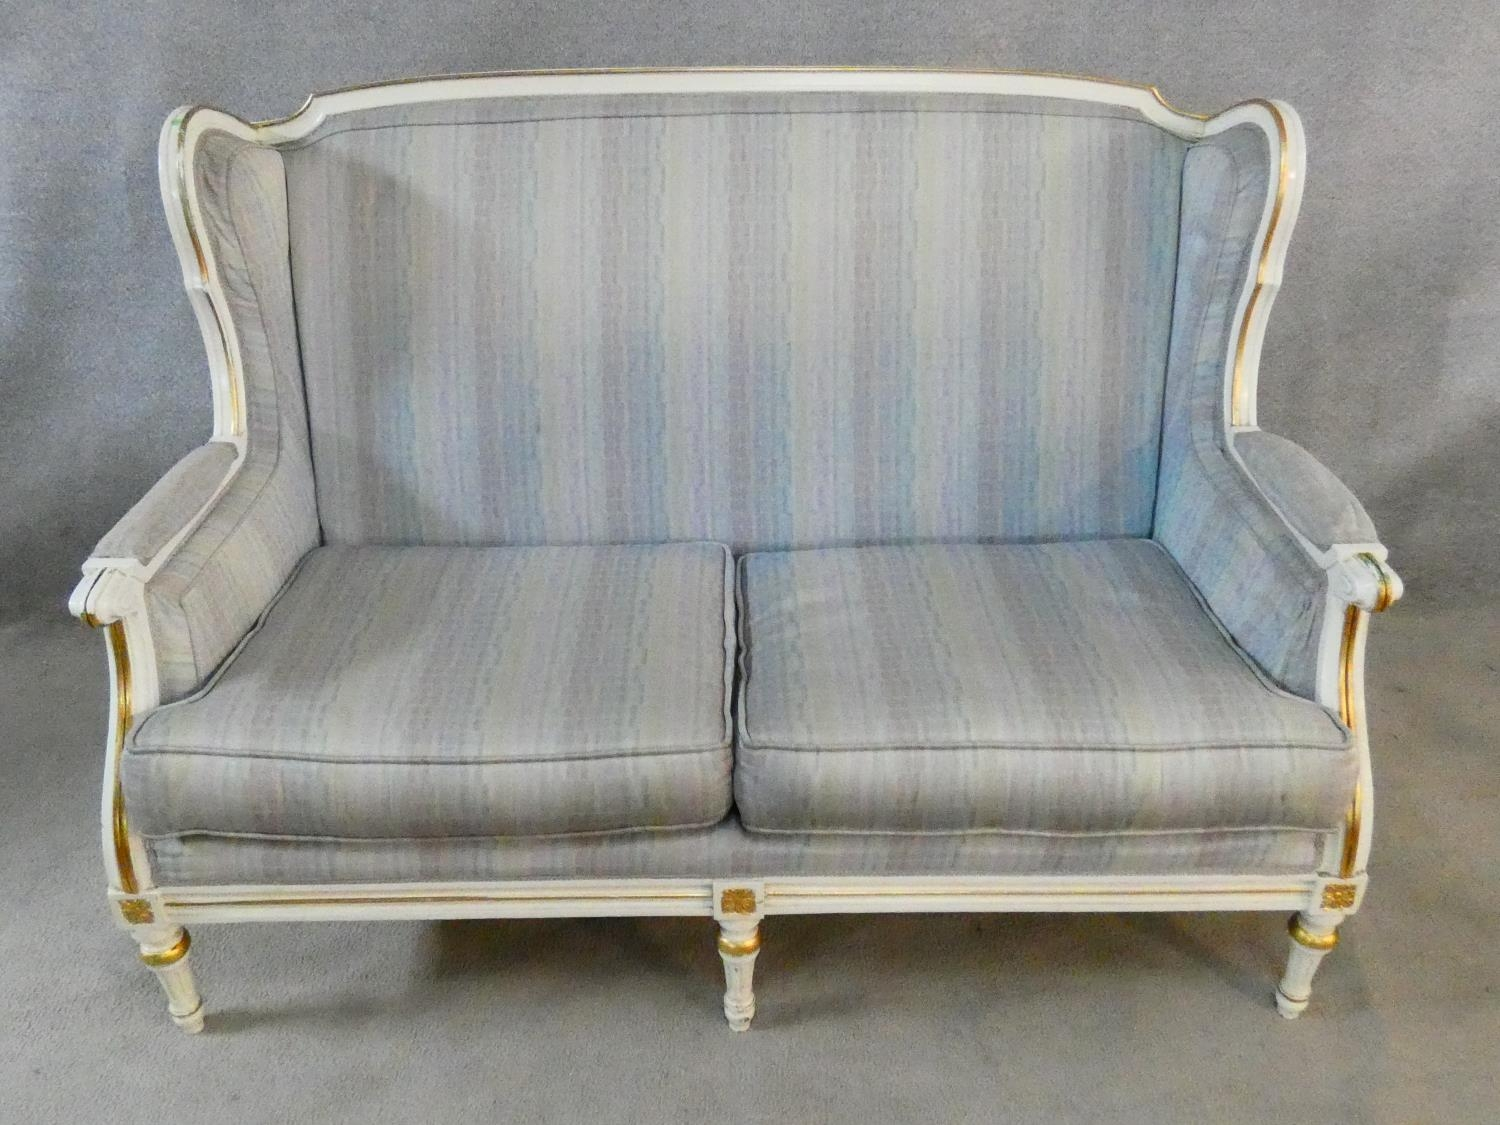 A Louis XVI style gilt and with painted two seater sofa in pale damask upholstery. H.93 L.136 D.77cm